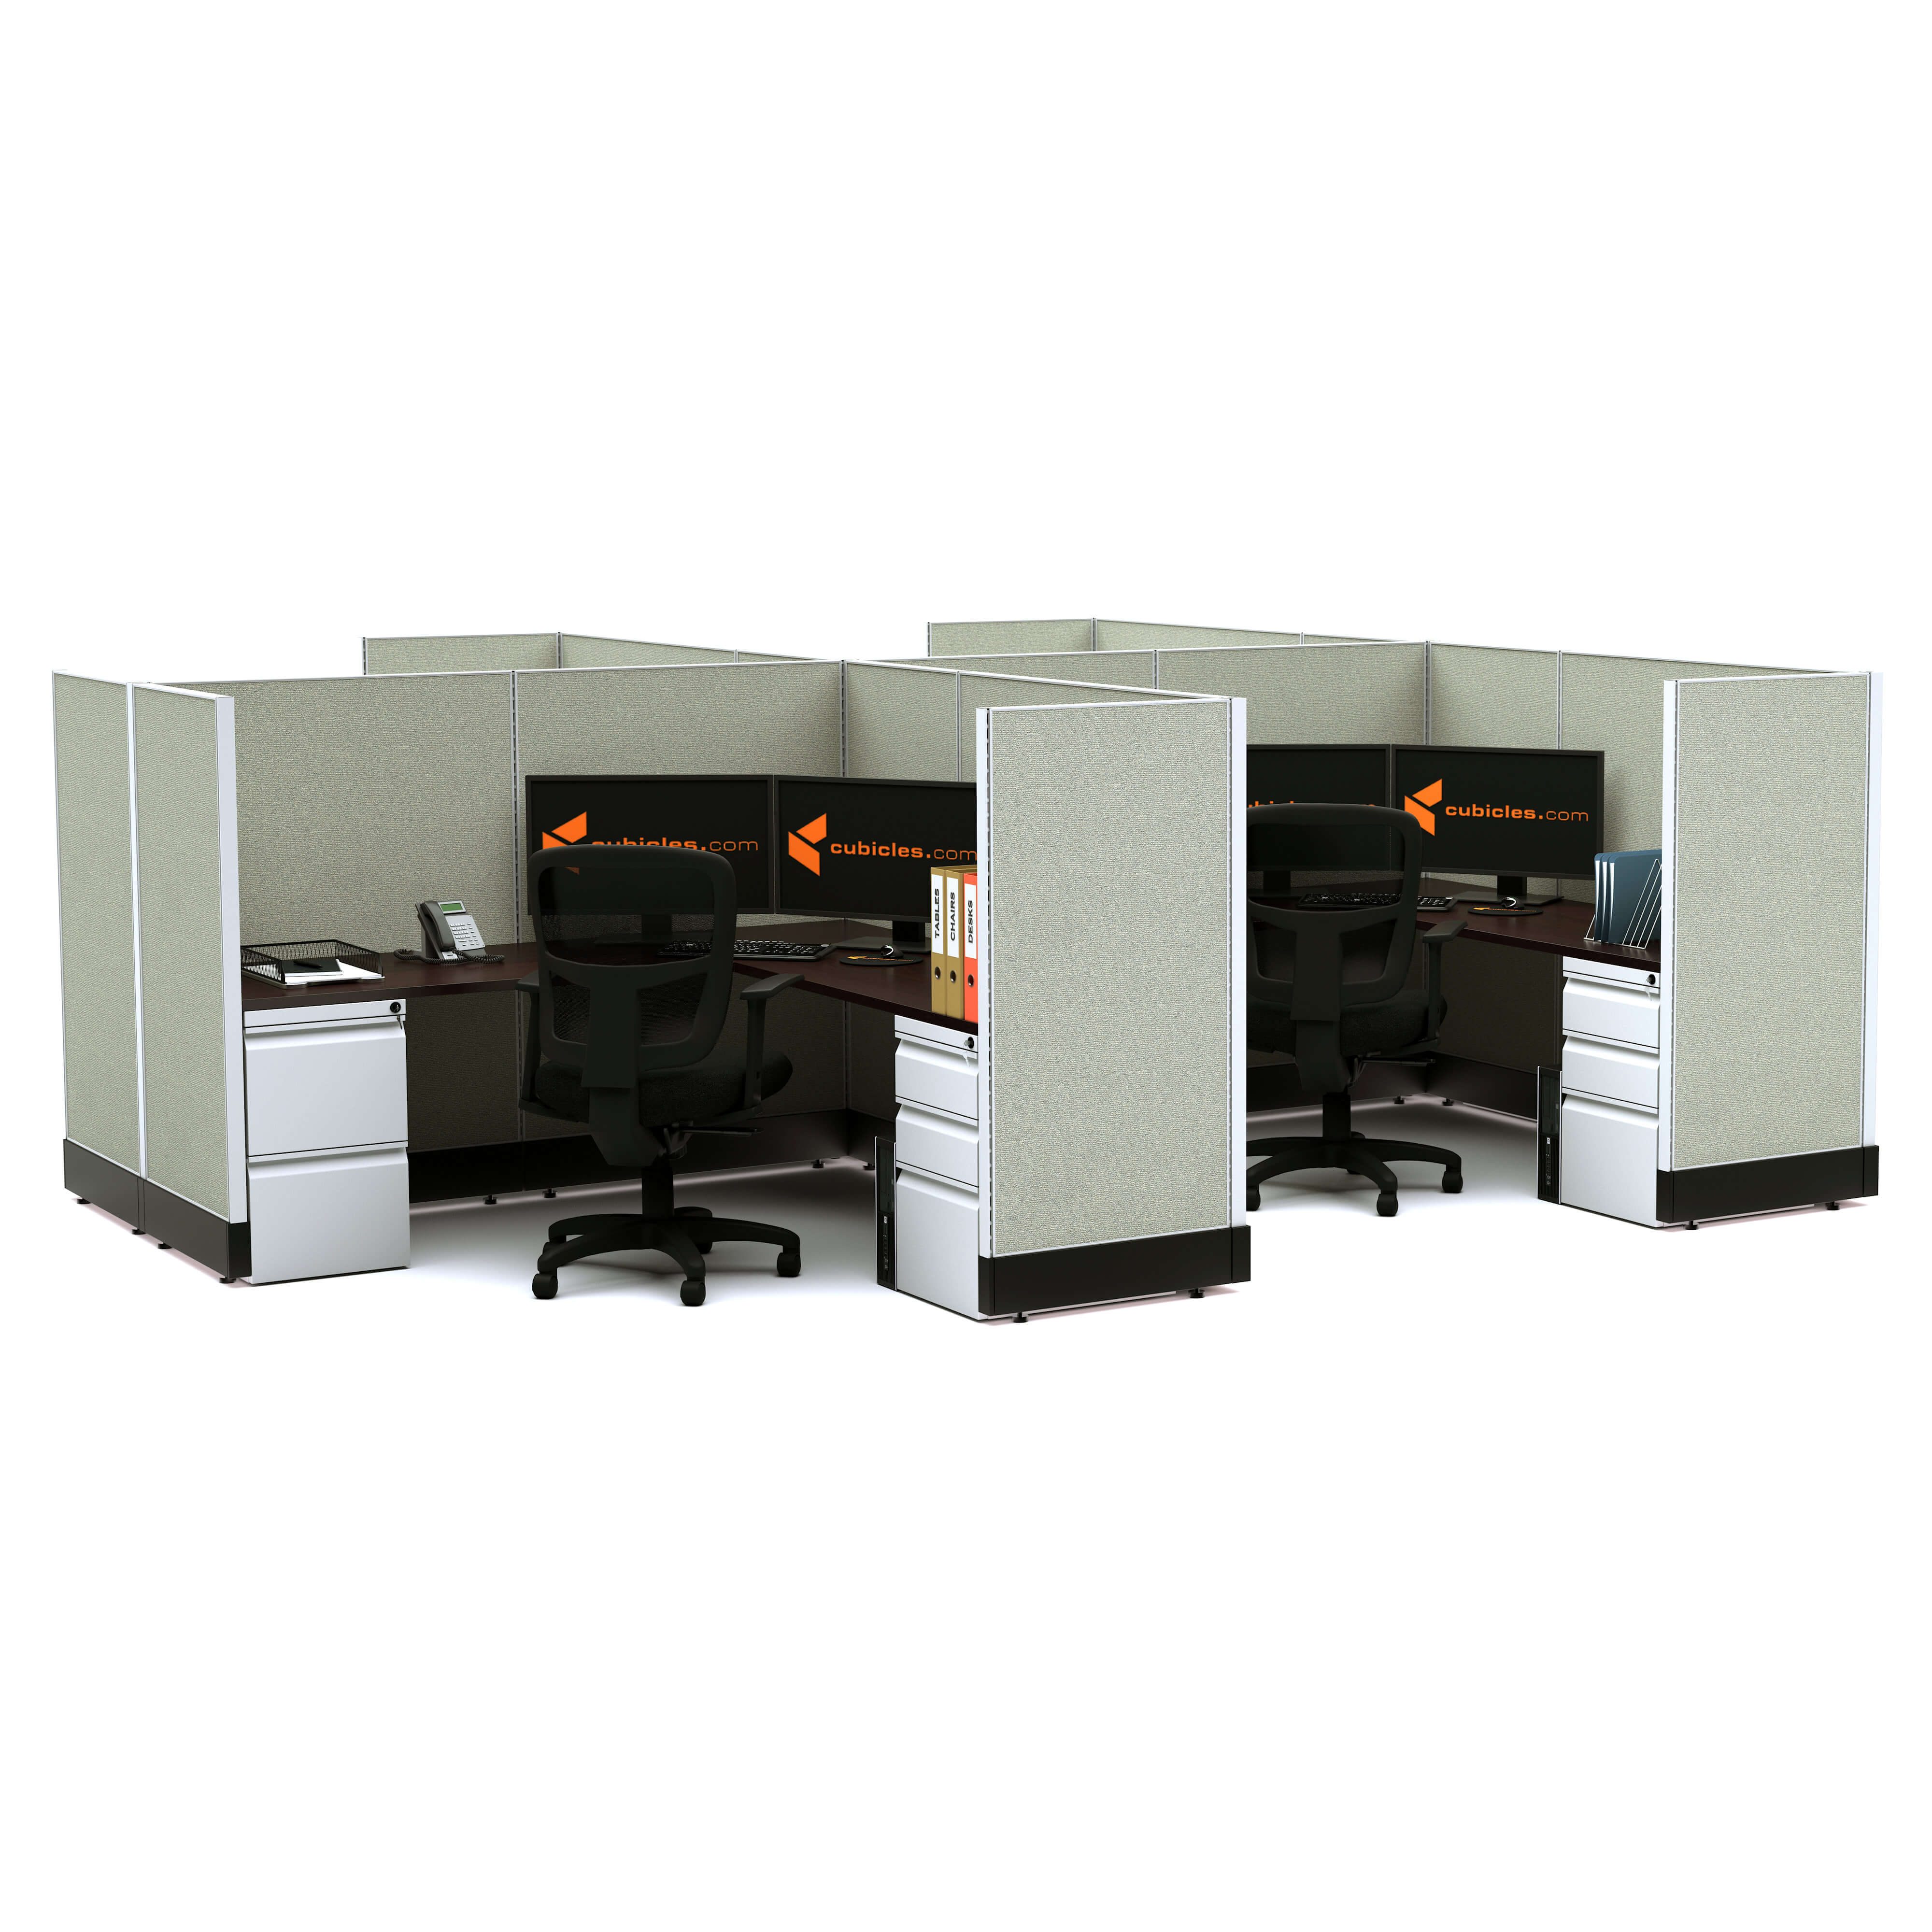 modular-office-furniture-workstation-desk-53-4pack-clustered-unpowered.jpg